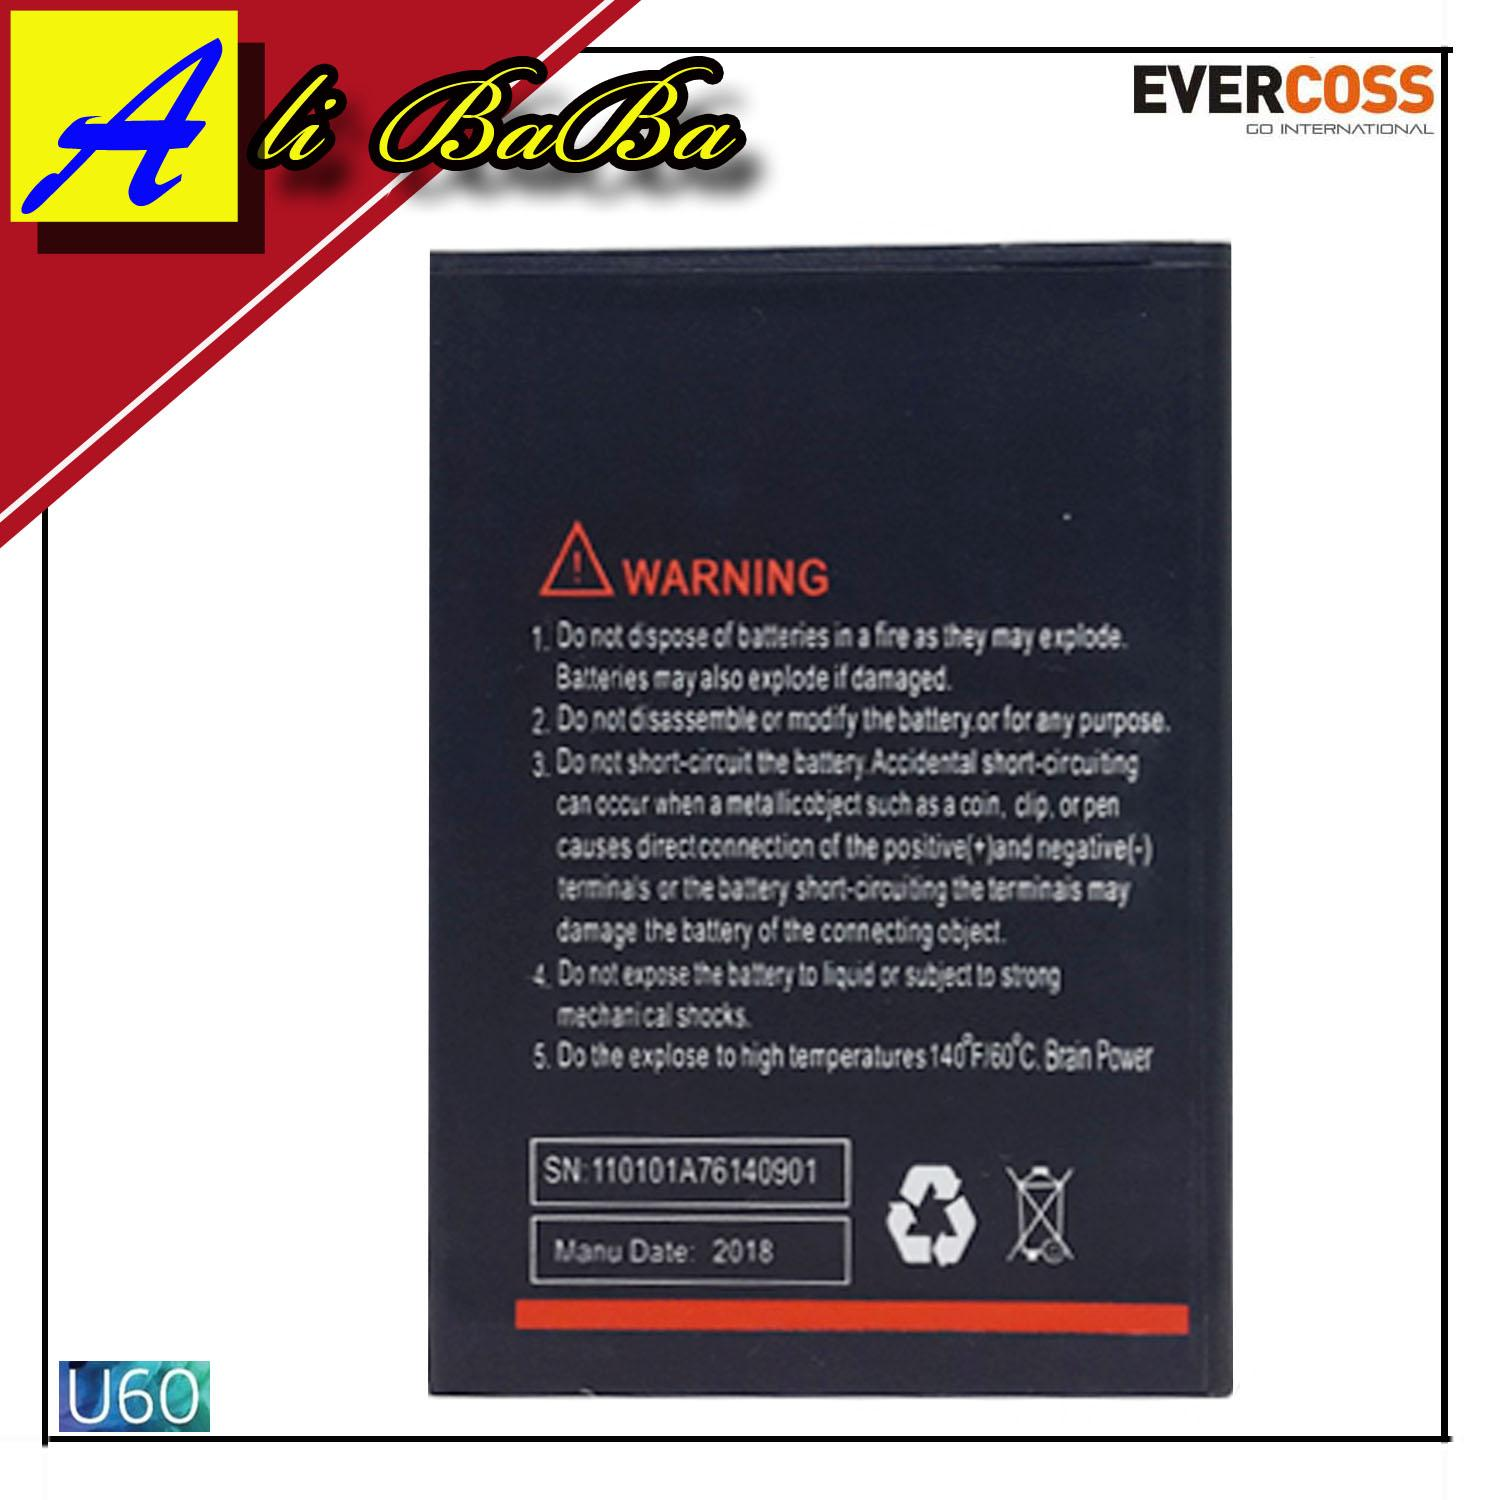 2 Baterai Handphone Evercoss U60 E82 Double Power Evercoss Batre HP - 3 .